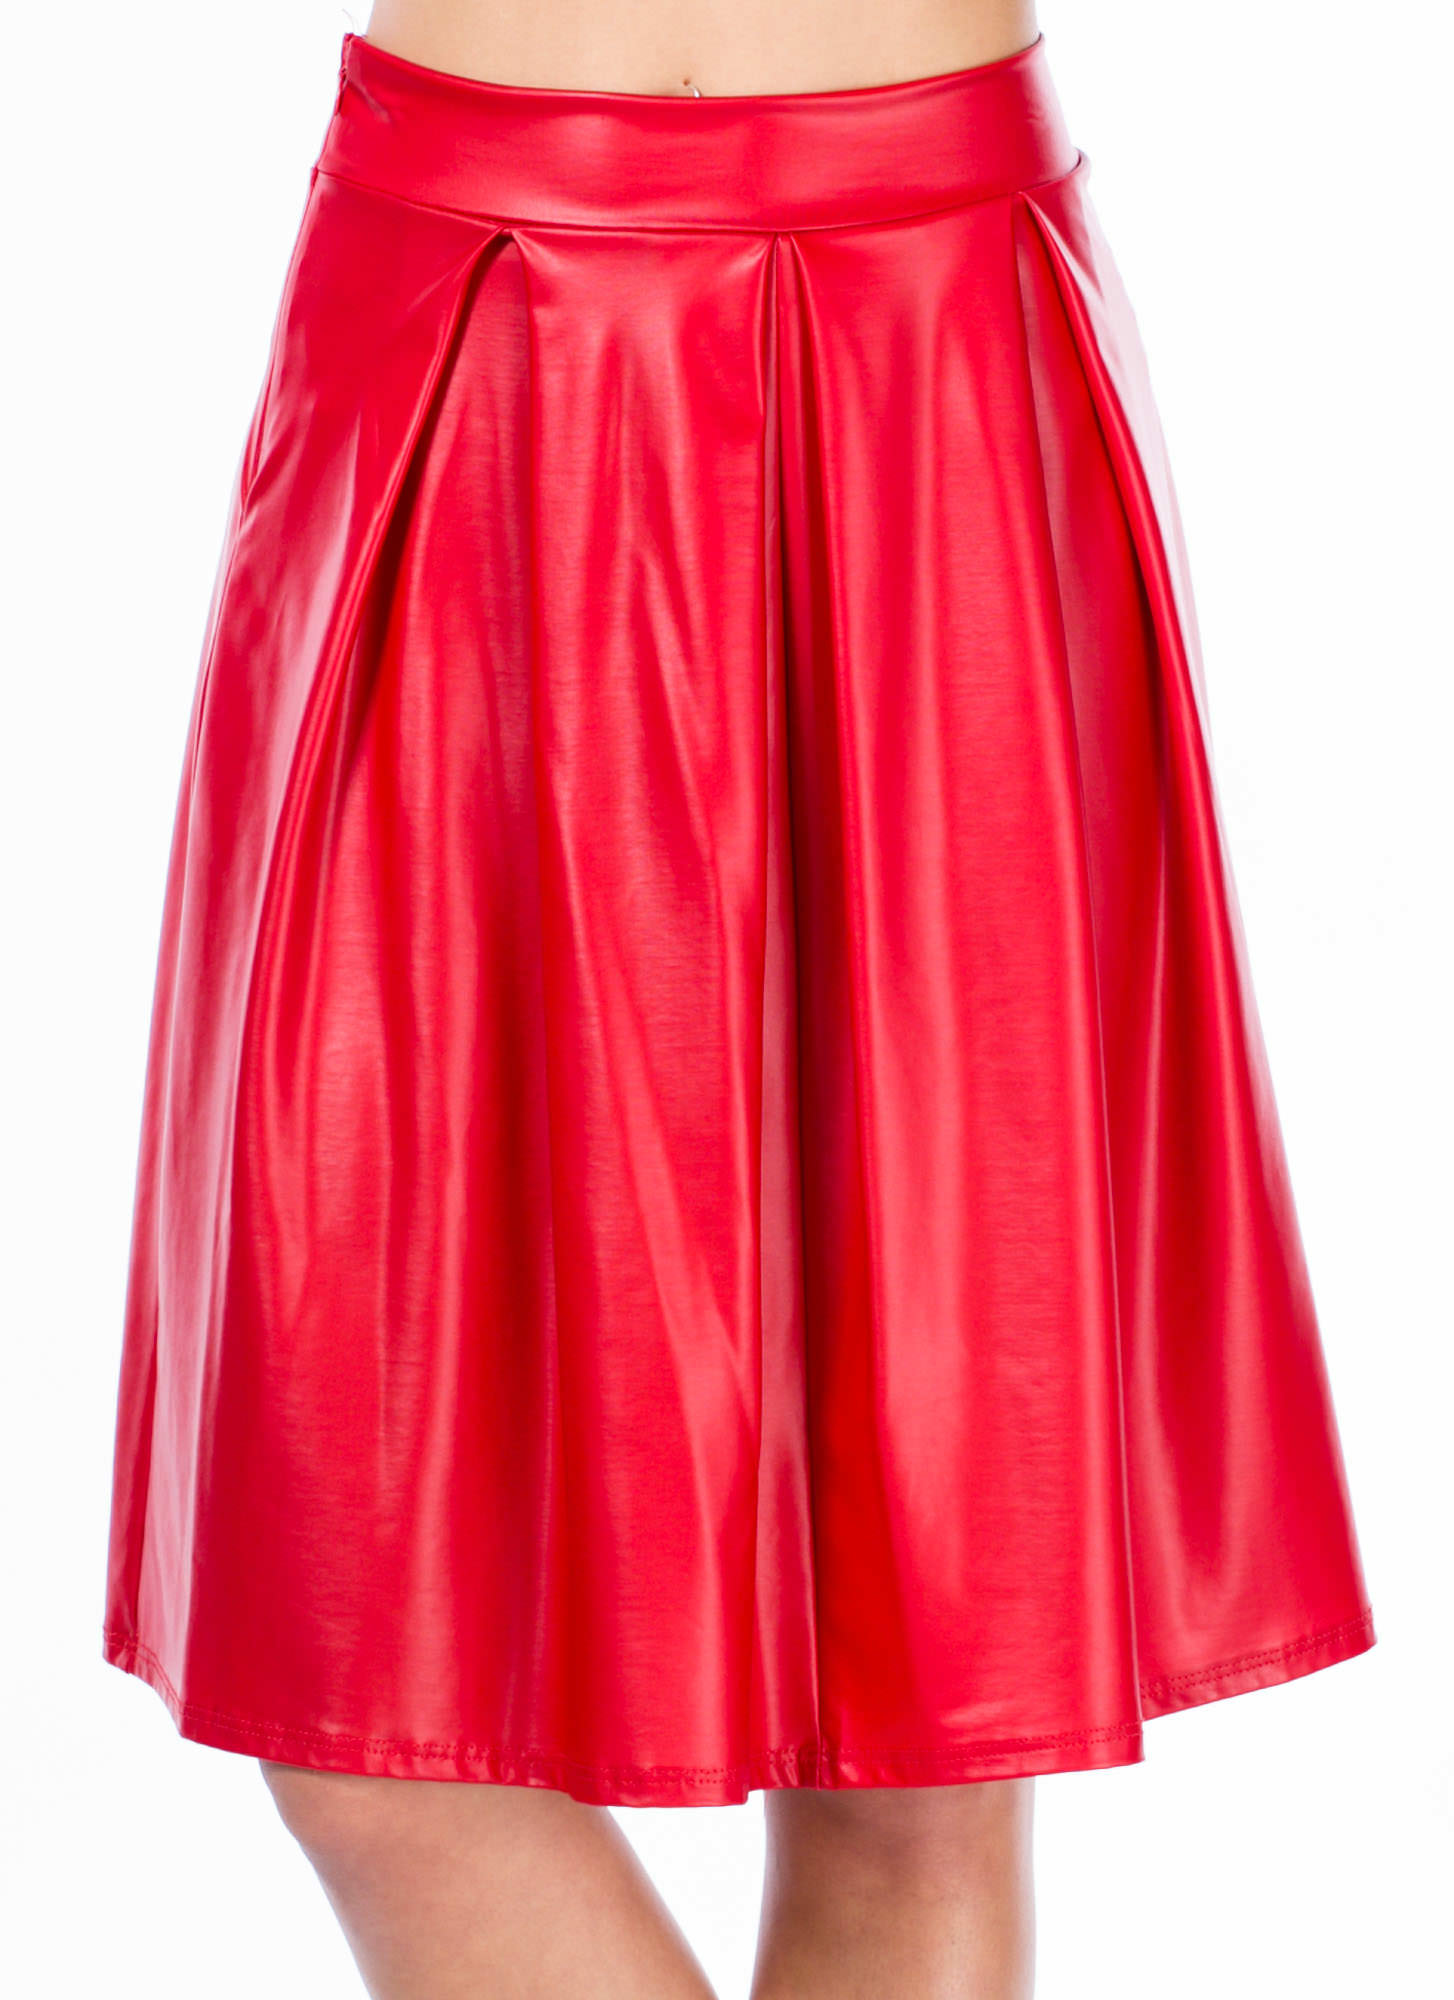 If You Pleats A-Line Midi Skirt RED